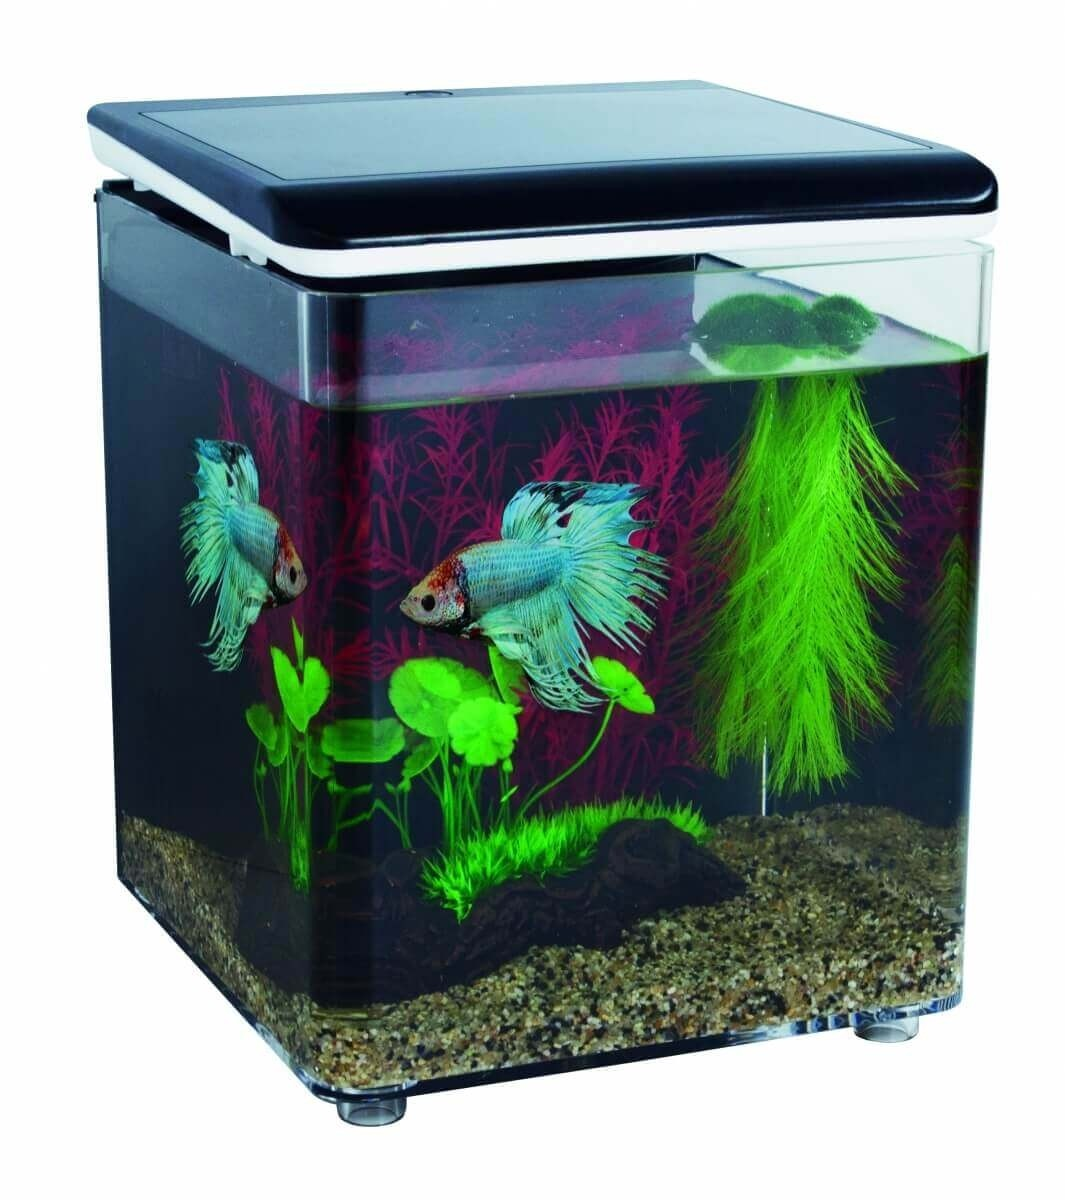 Home 8 et Betta Kit - mini aquarium acrylique_3